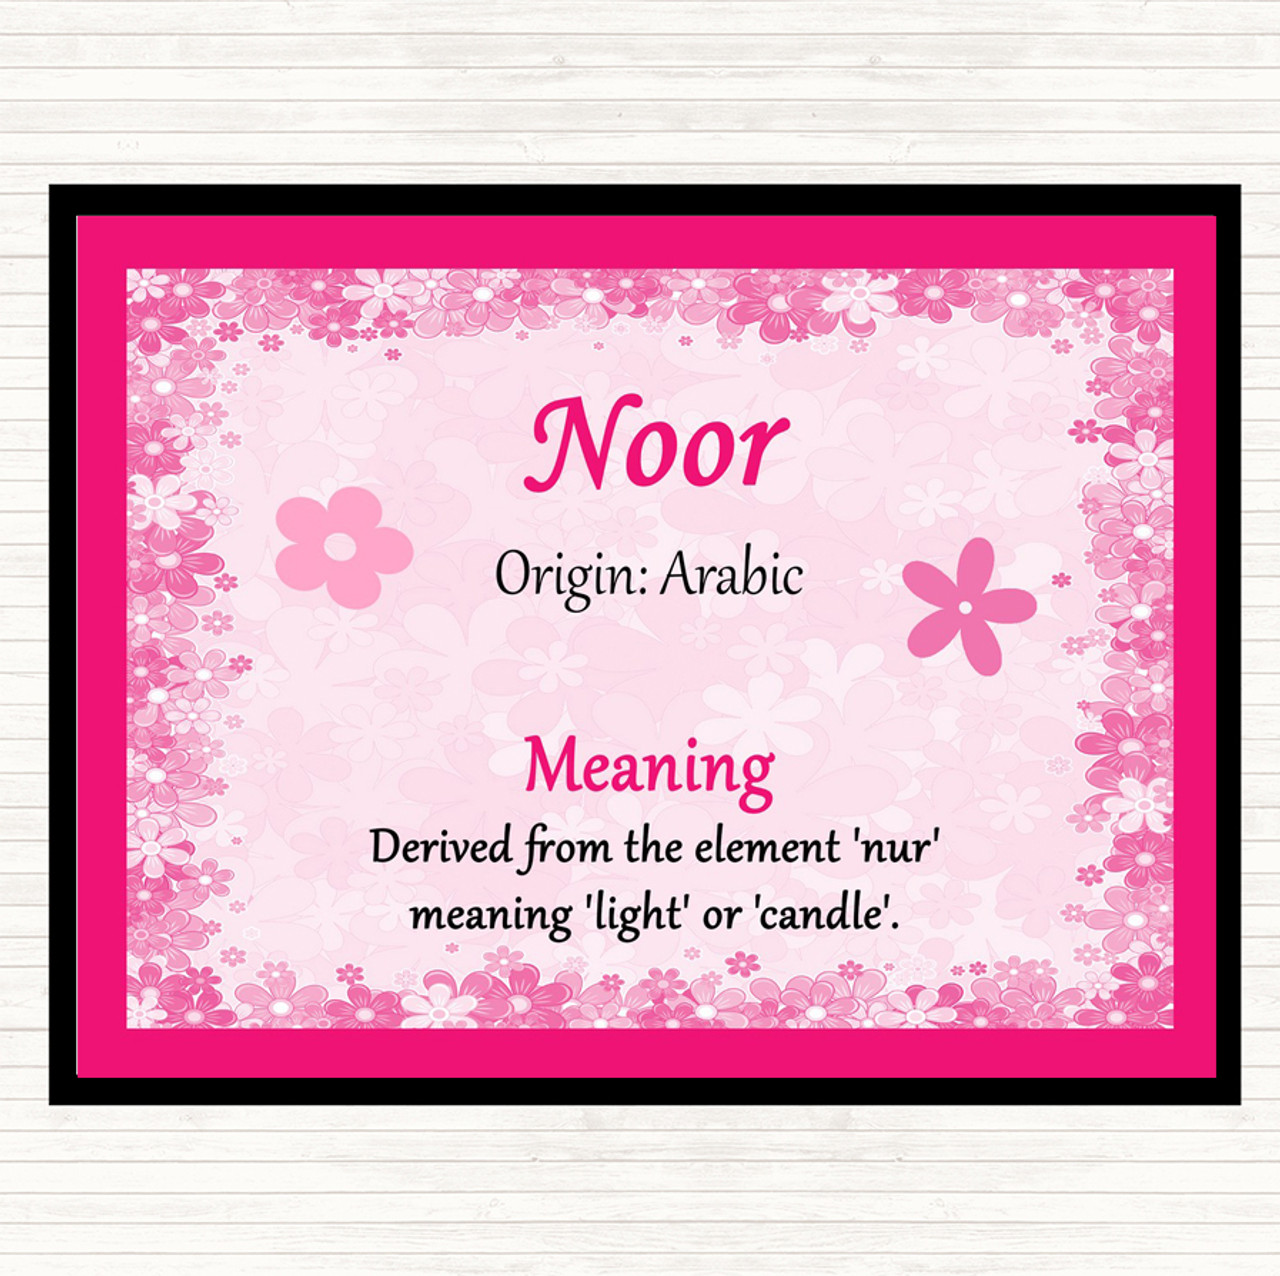 Noor name meaning in english